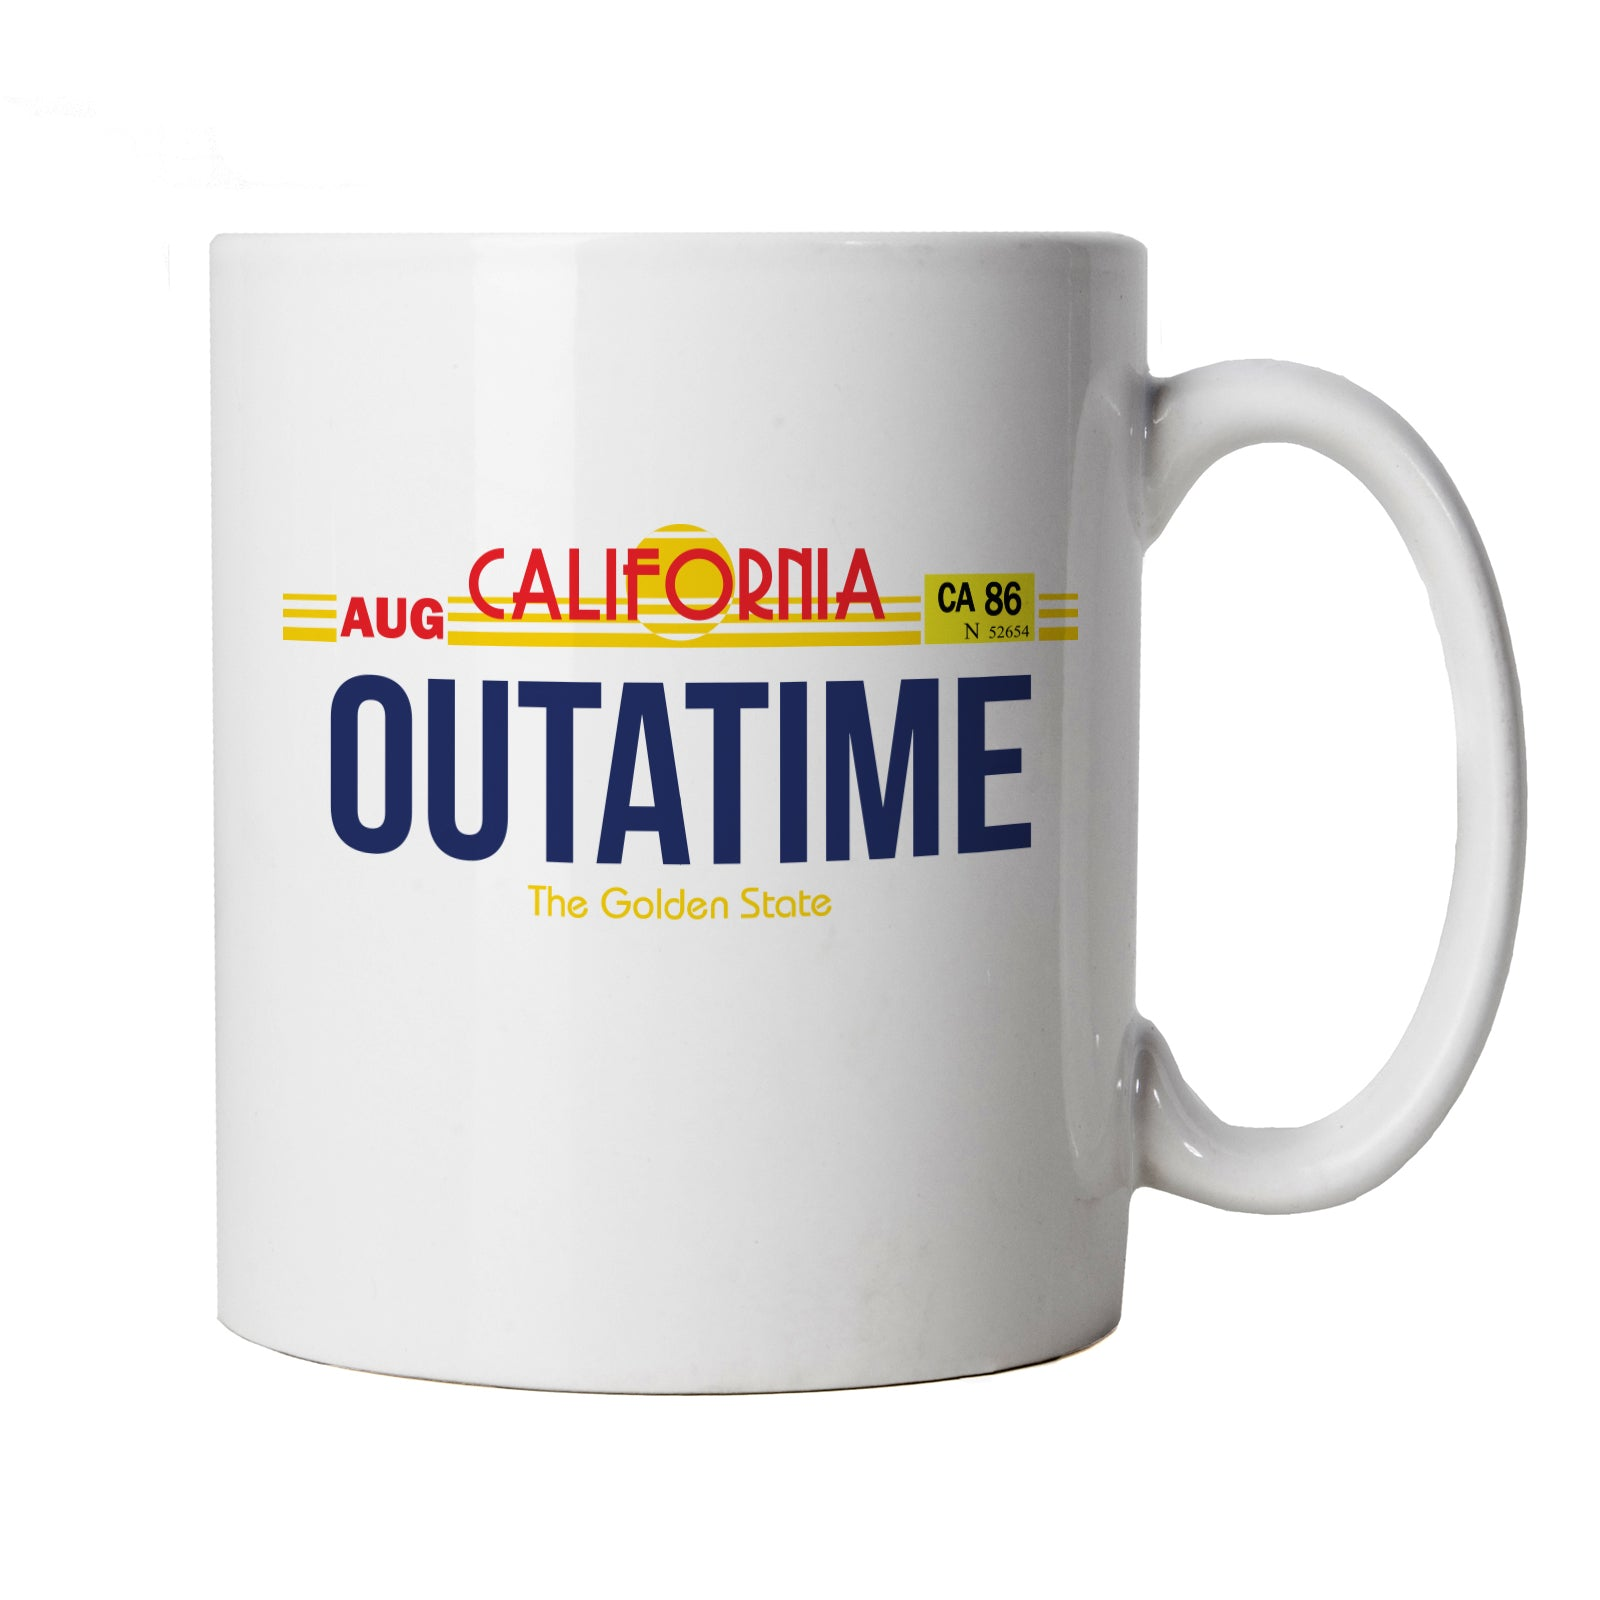 Outatime Movie Inspired, Mug | Marty McFly Back To The Future Number Plate | Time Travel Sci-Fi Delorean Doc Brown DMC | Sci-Fi TV & Movie Cup Gift